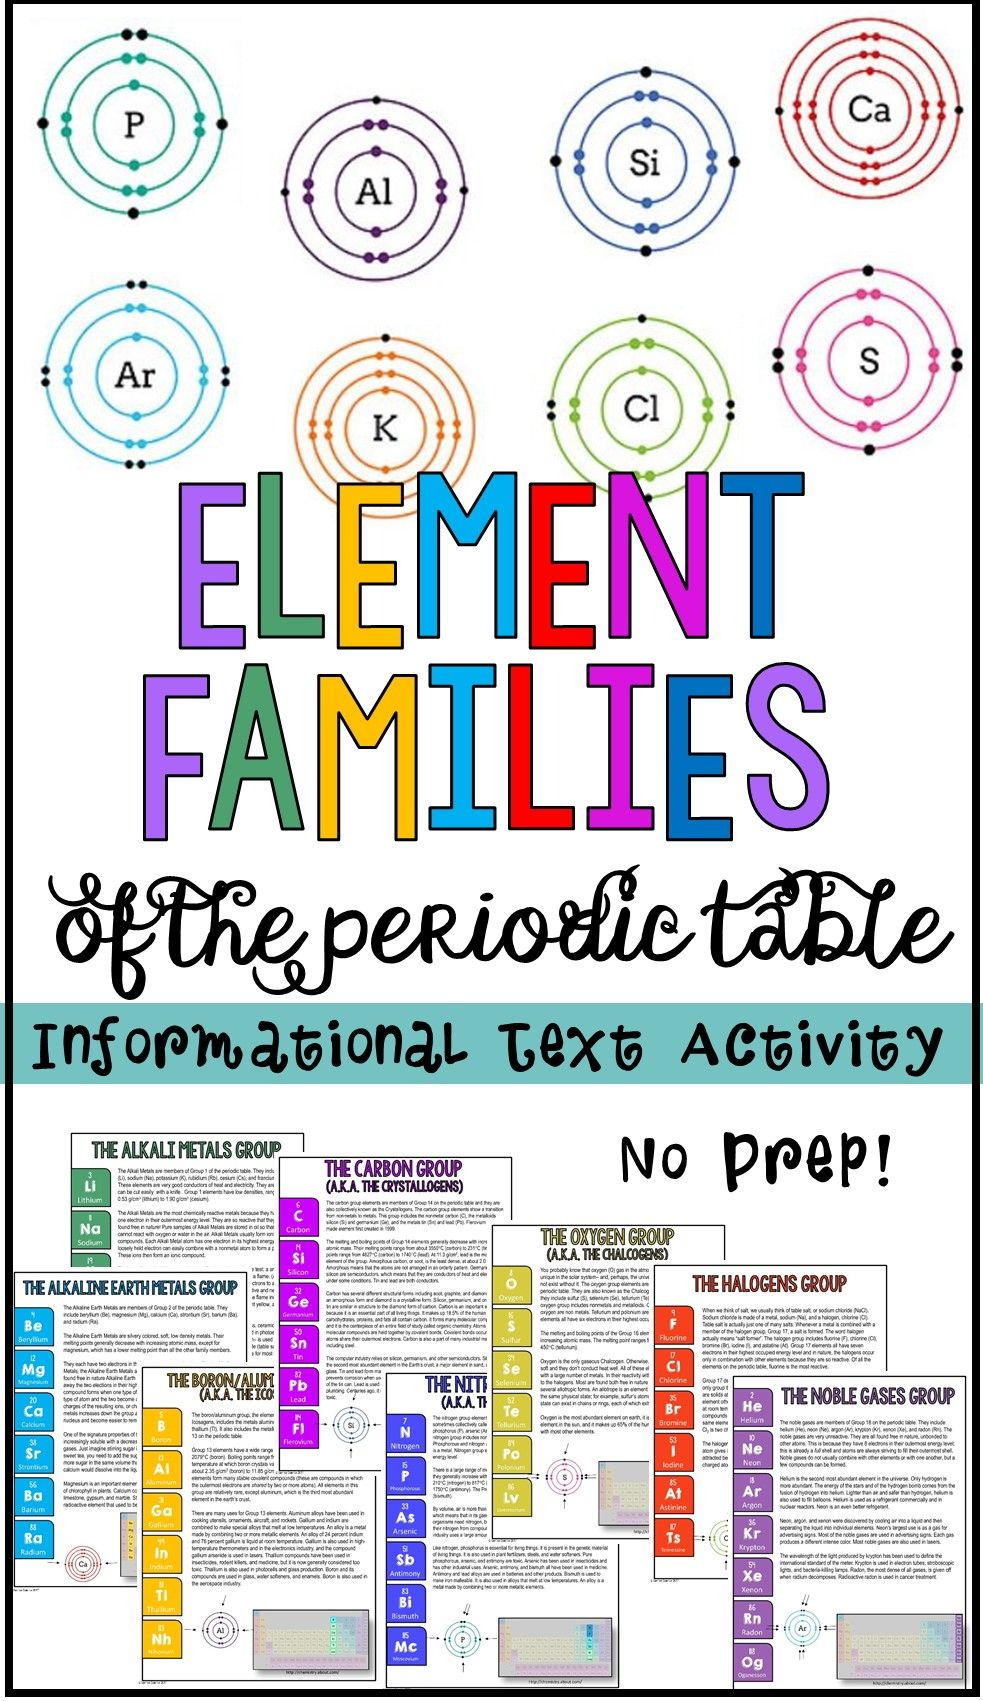 Element Families Of The Periodic Table Informational Text Distance Learning Informational Texts Activities Informational Text Teaching Chemistry [ 1701 x 983 Pixel ]